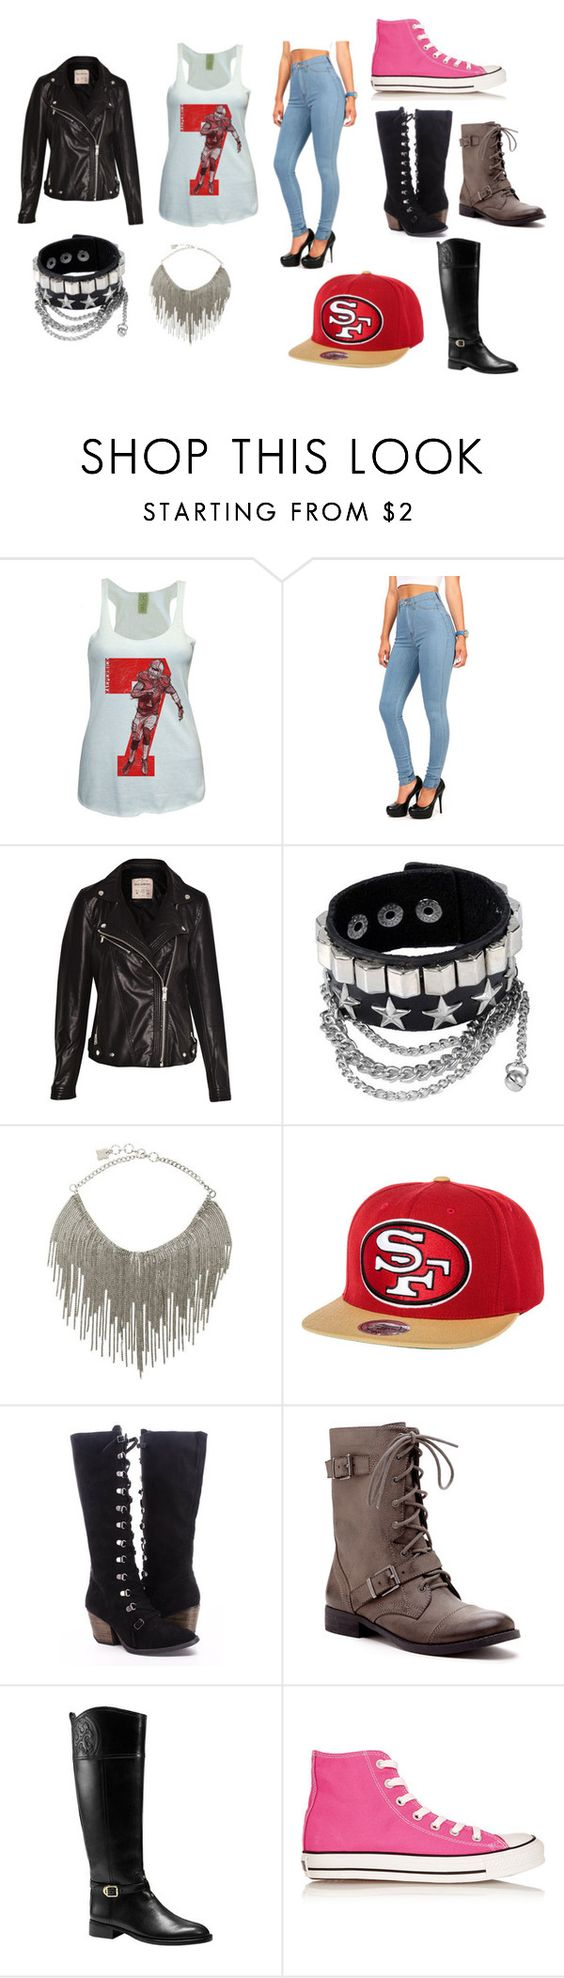 """49ers Outfit #1"" by azariaheady ❤ liked on Polyvore featuring Pull&Bear, BCBGMAXAZRIA, Mitchell & Ness, Sole Society, Tory Burch, Converse, women's clothing, women, female and woman"